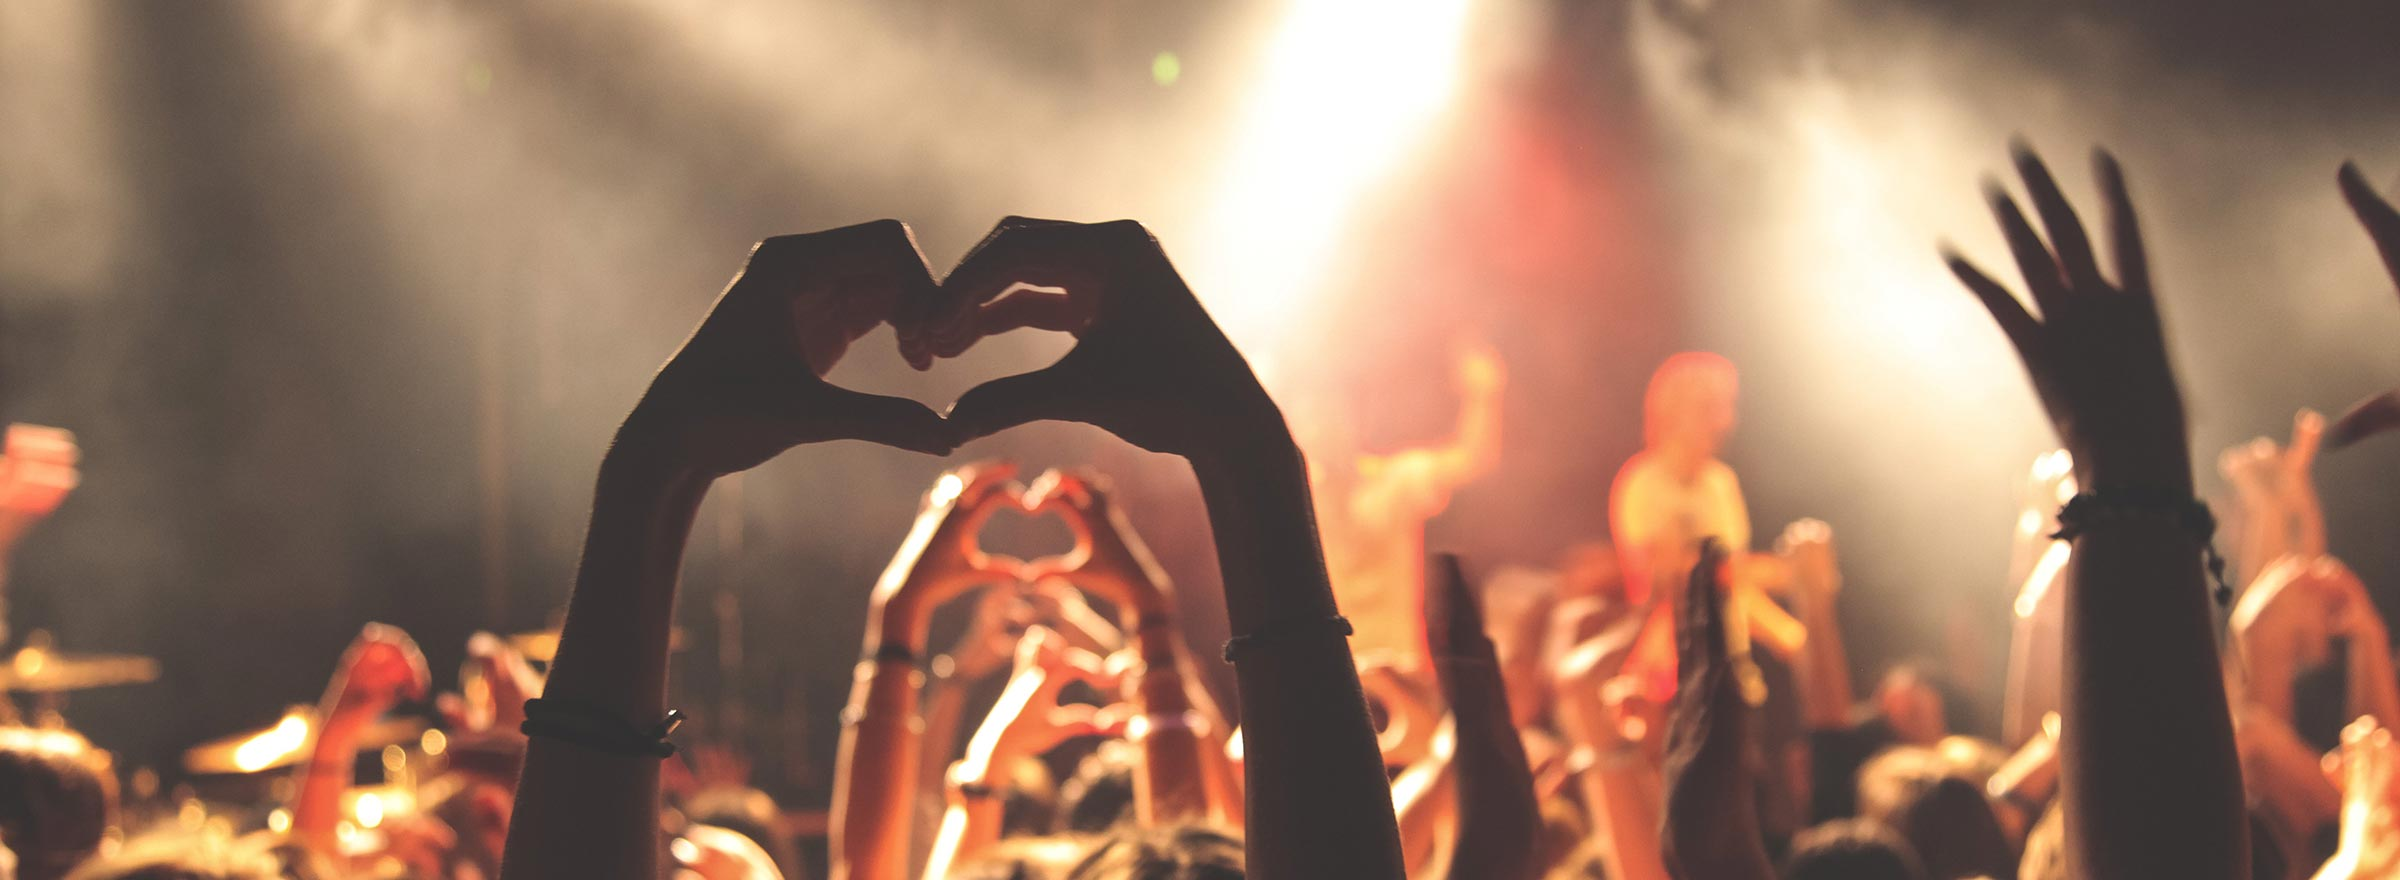 people at a concert holding up their hands in the shape of a heart, representing millennials and their potential to support nonprofit causes and fundraising